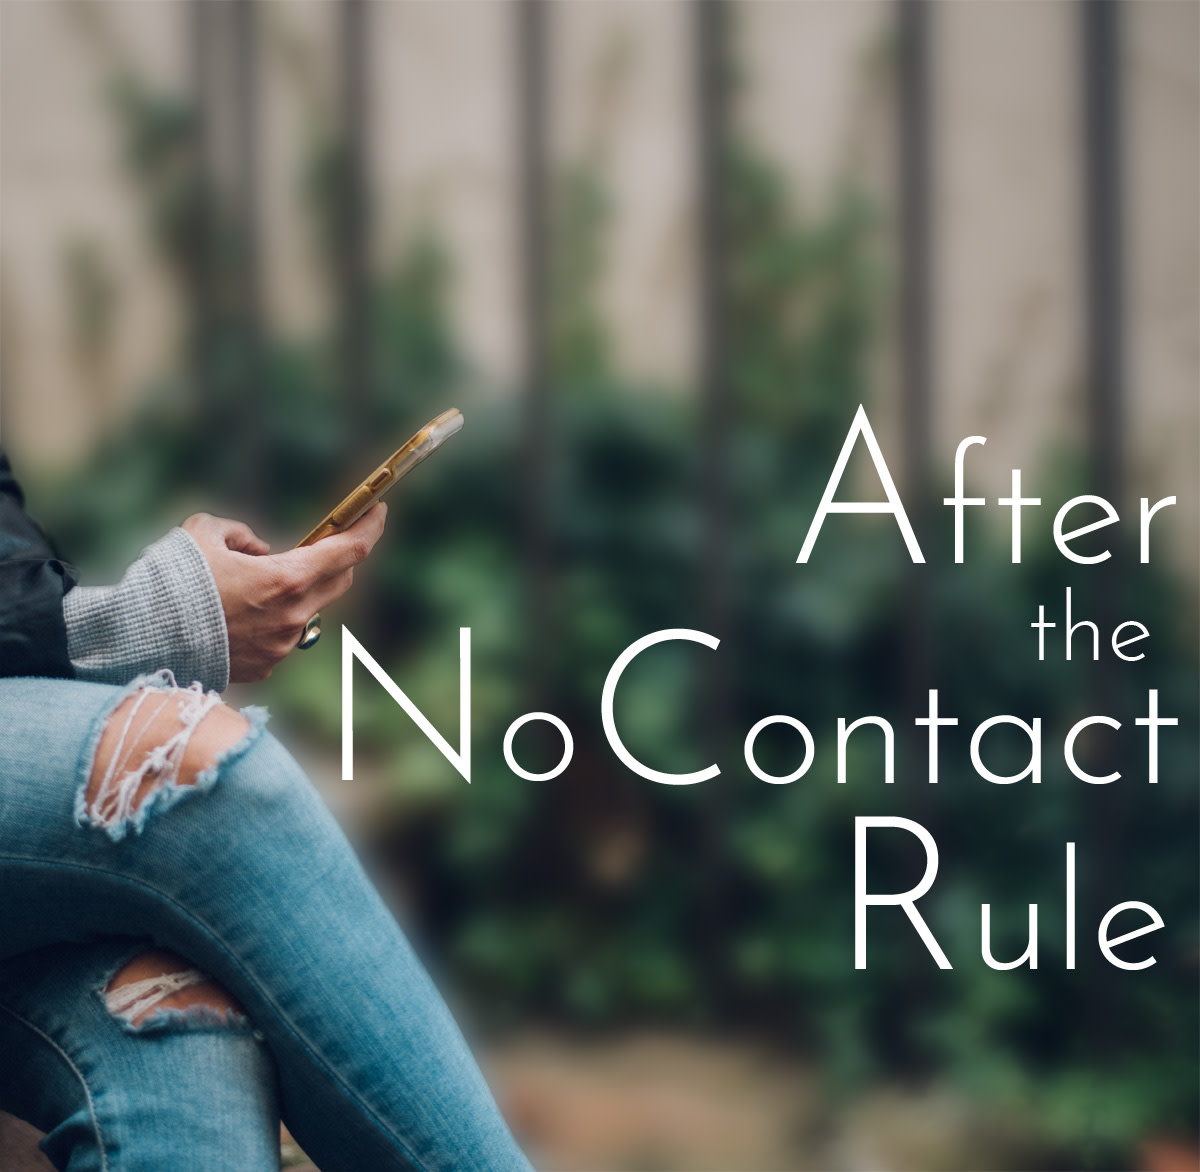 6 Steps to Contacting Your Ex After the 30 Day No Contact Rule